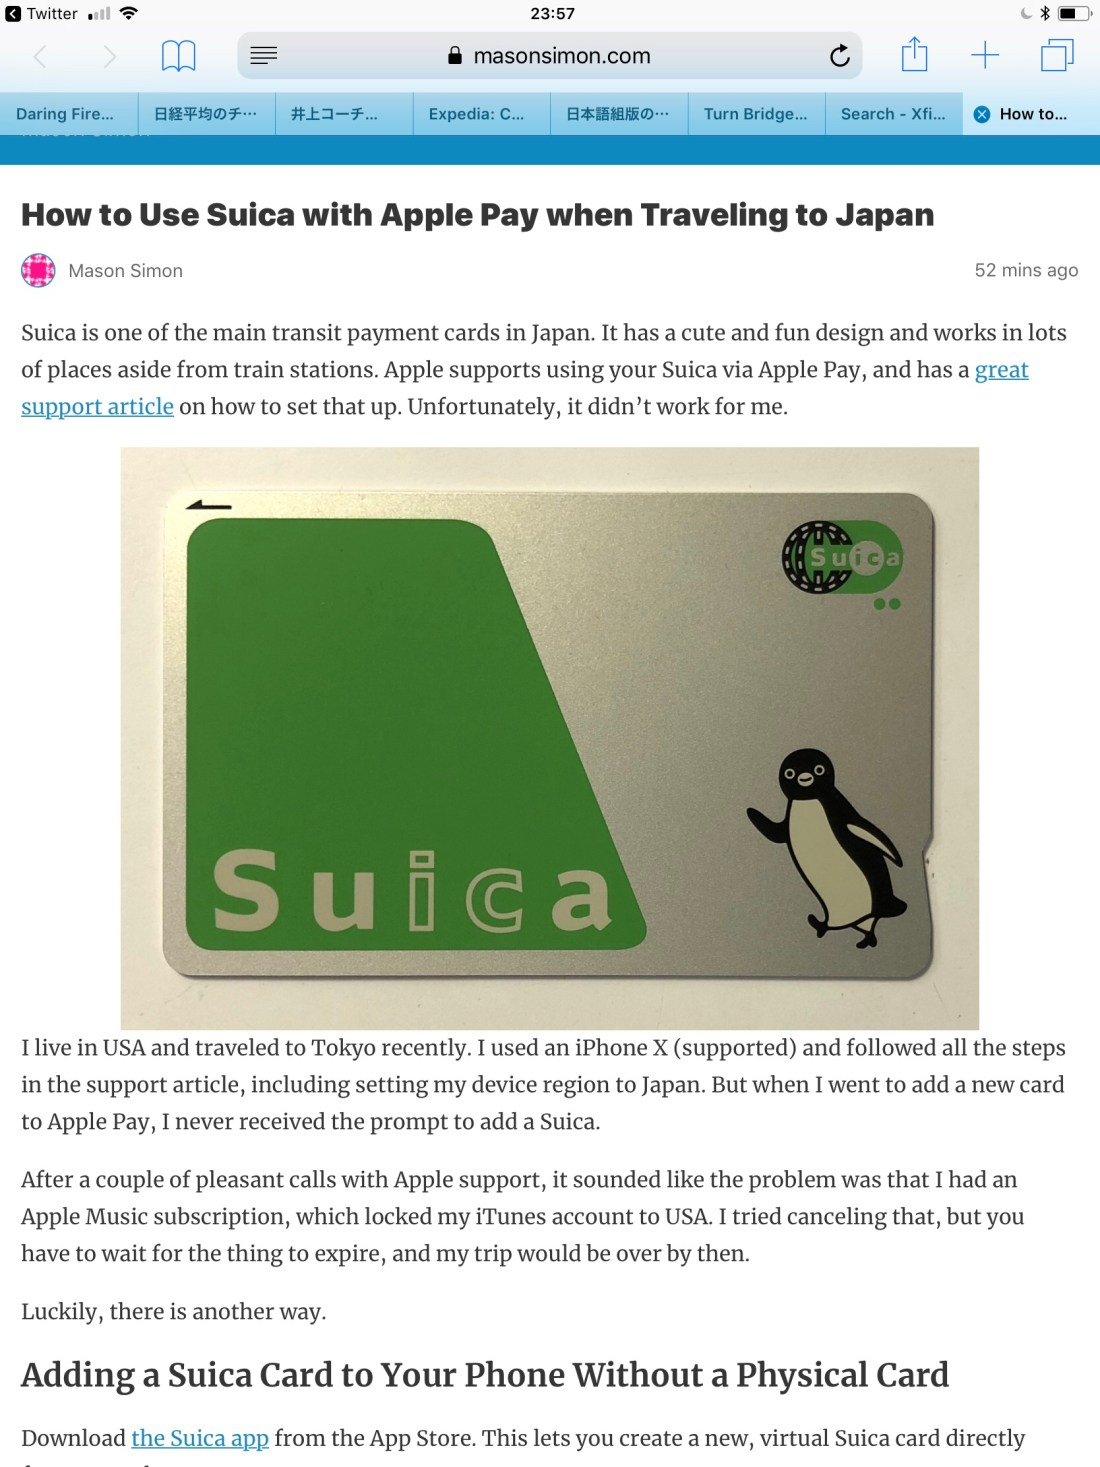 How to use Suica with Apple Pay